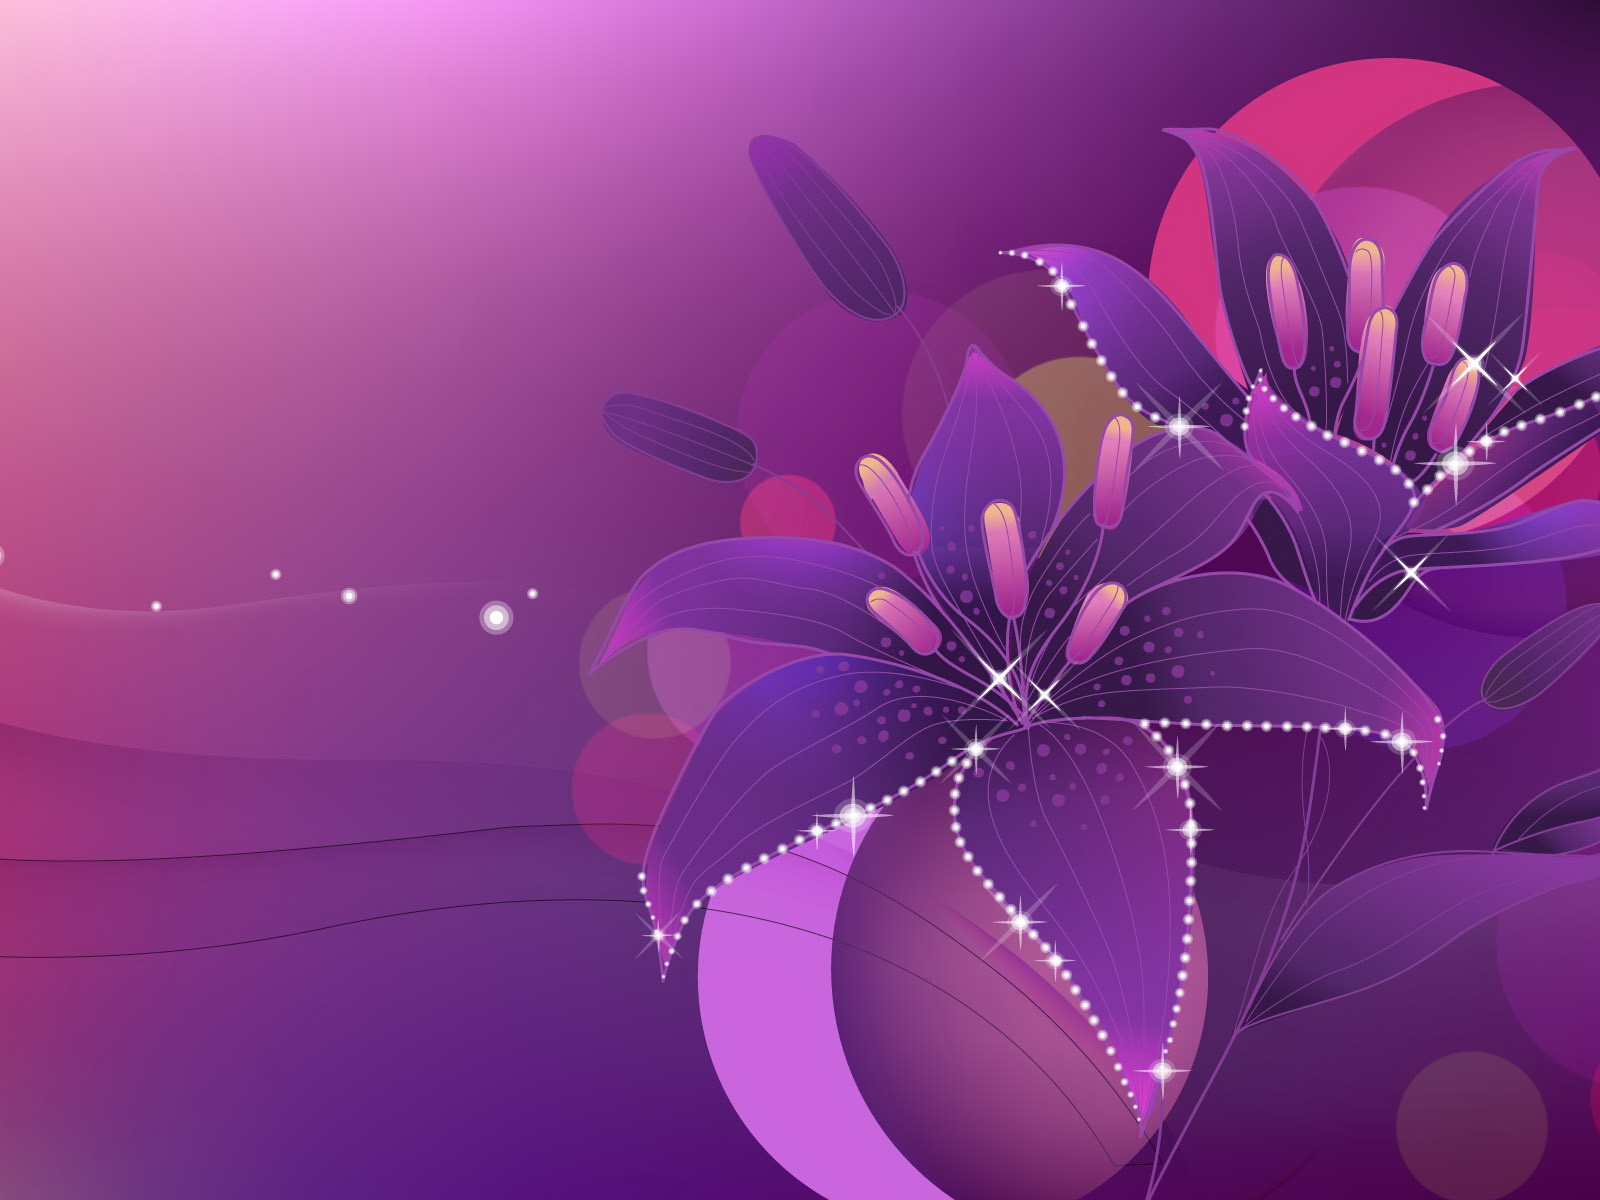 Beautiful Flower Wallpaper Free Download For Mobile: Flowers Wallpapers Free Download